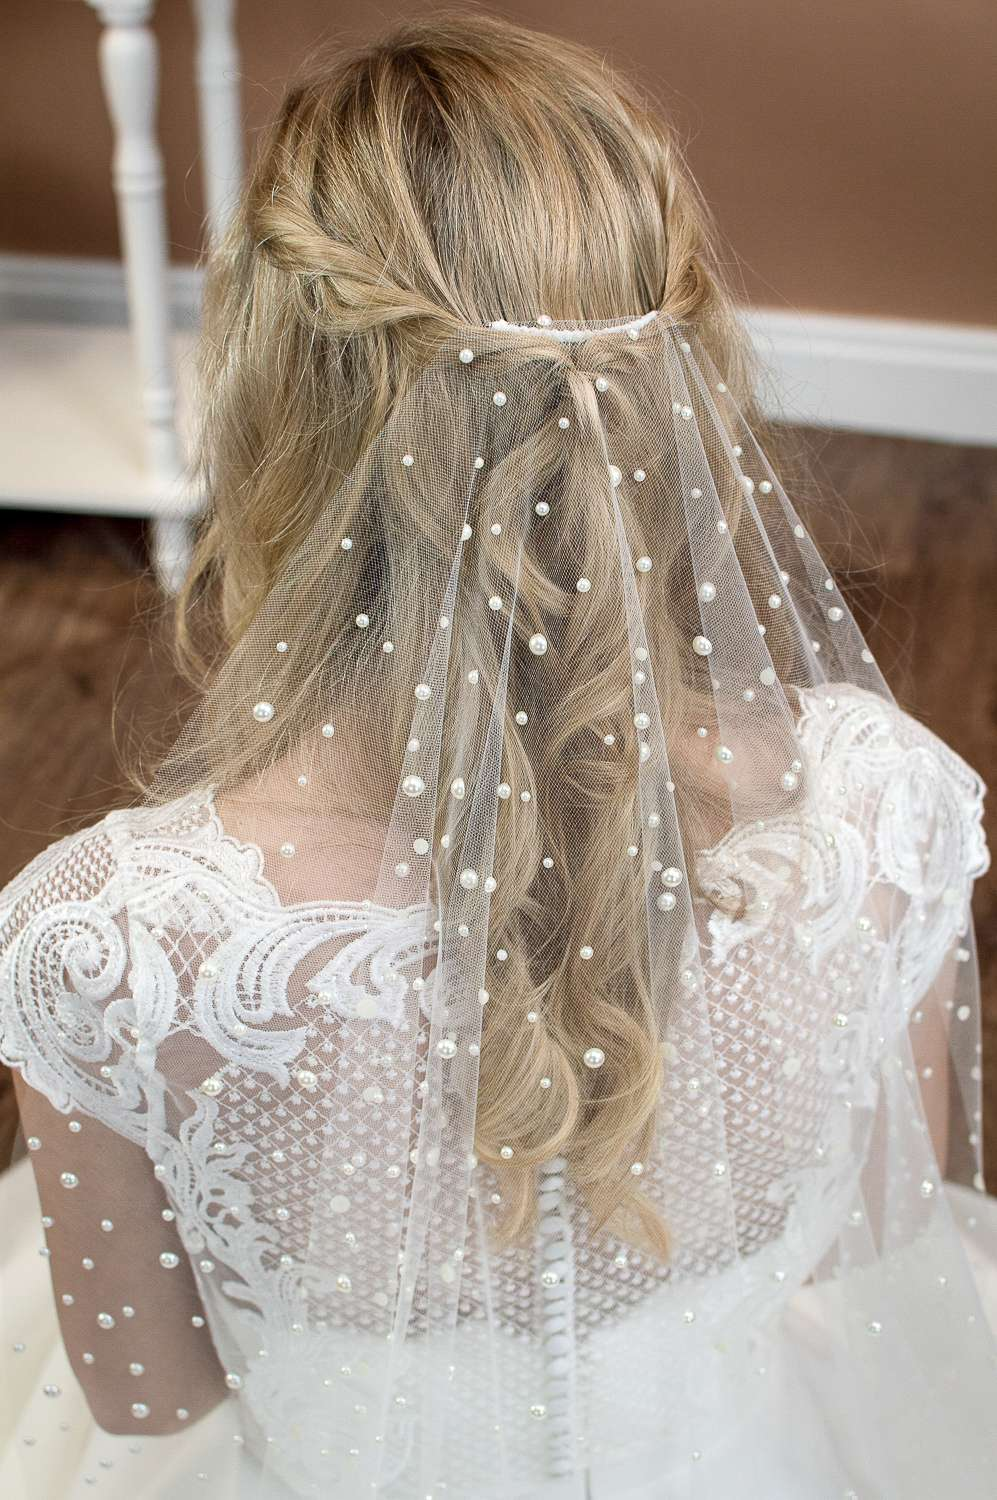 Violet - Single layer barely there veil in fingertip length with a cut edge and mixed size pearls closeup